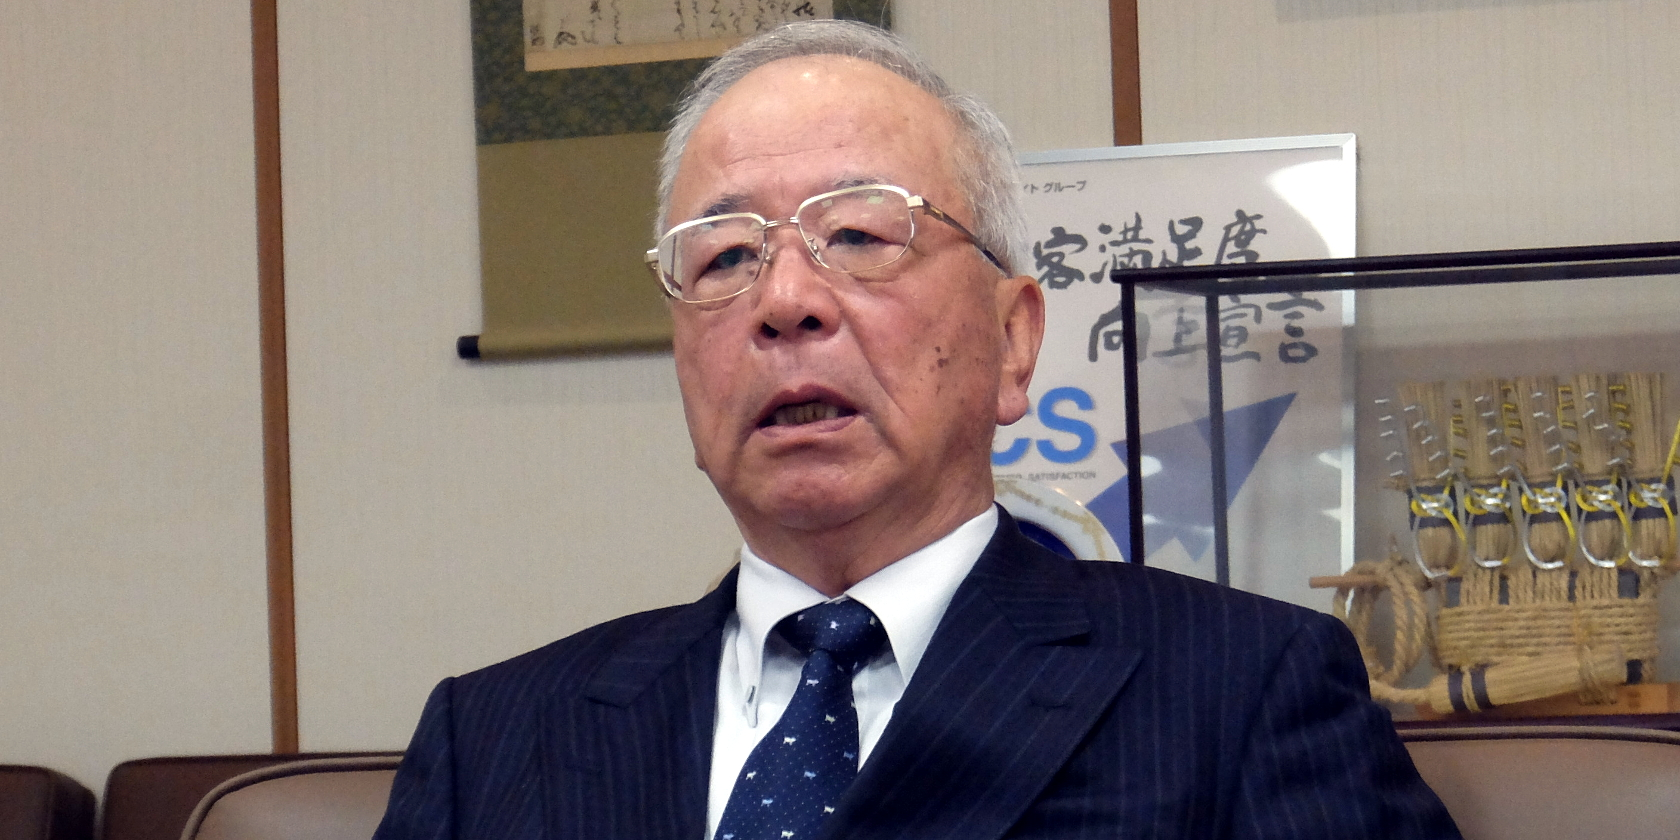 Interview: Sumitomo Bakelite President Shigeru Hayashi Discusses Operations in China, Europe, US